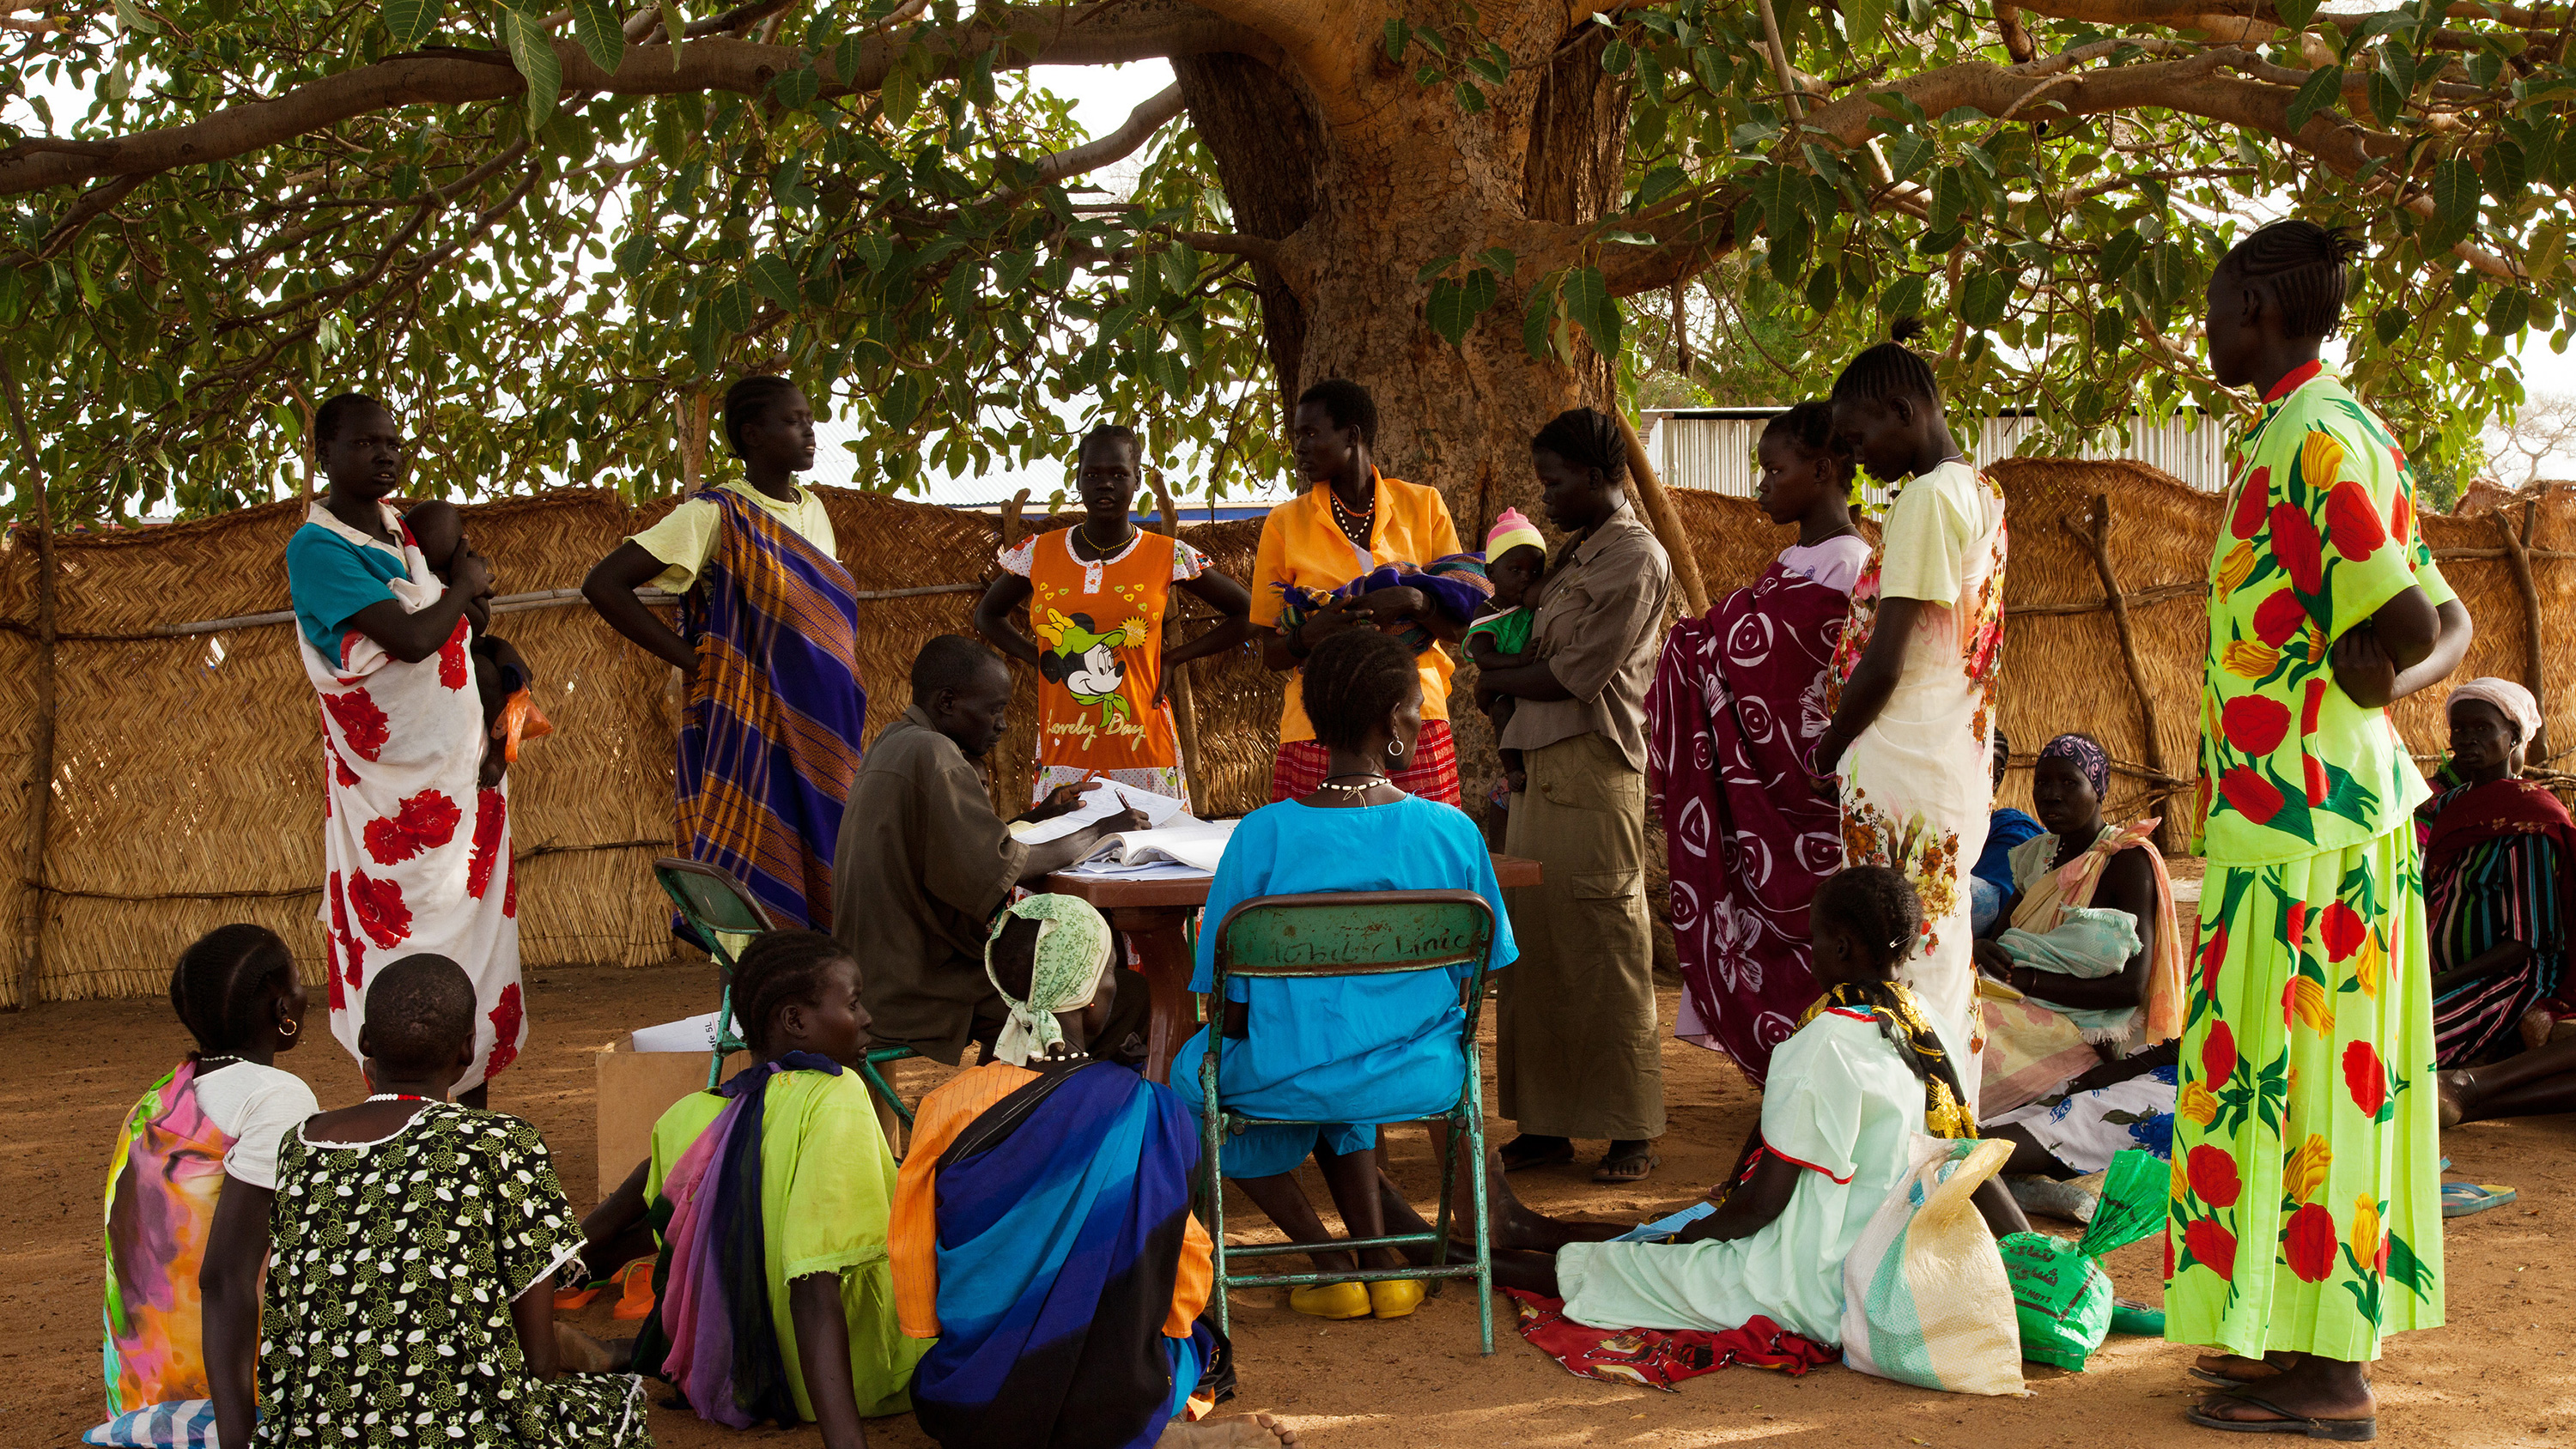 Picture shows a group of people, many of whom are wearing brightly coloured clothing, gathered under a tree, some sitting, some standing.